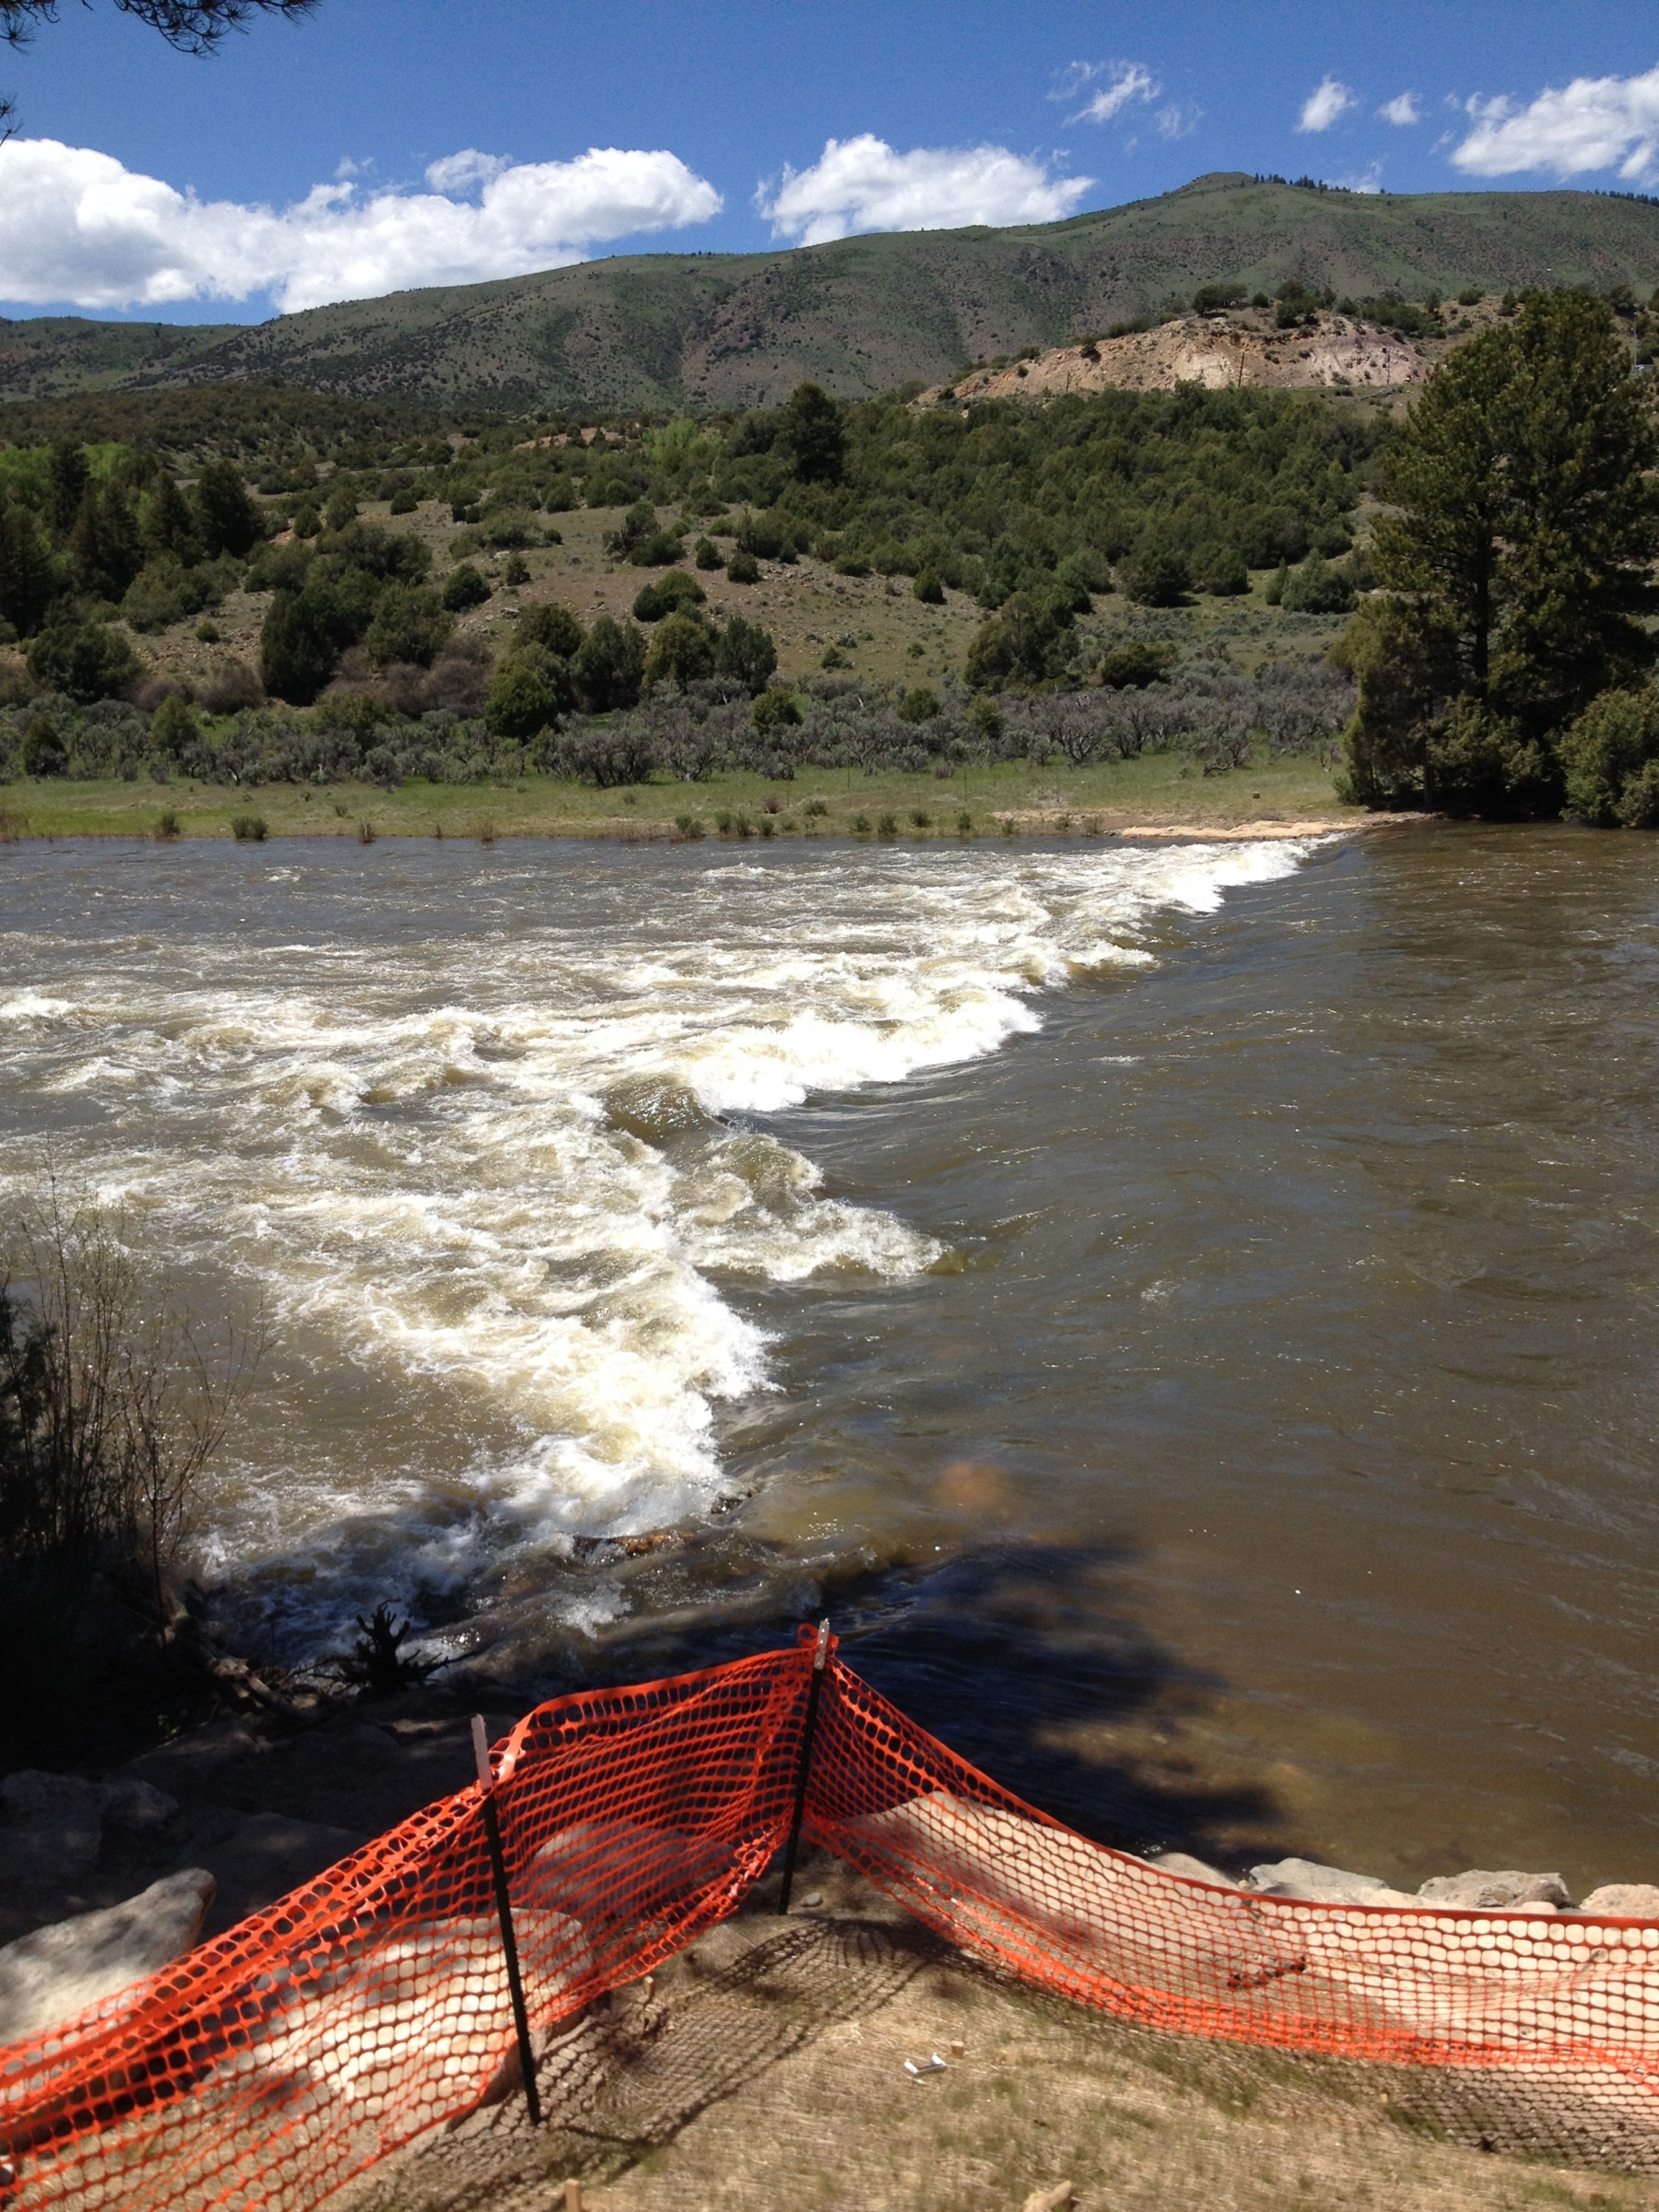 Click image for larger version  Name:June2_4600cfs.jpg Views:130 Size:1.61 MB ID:10008